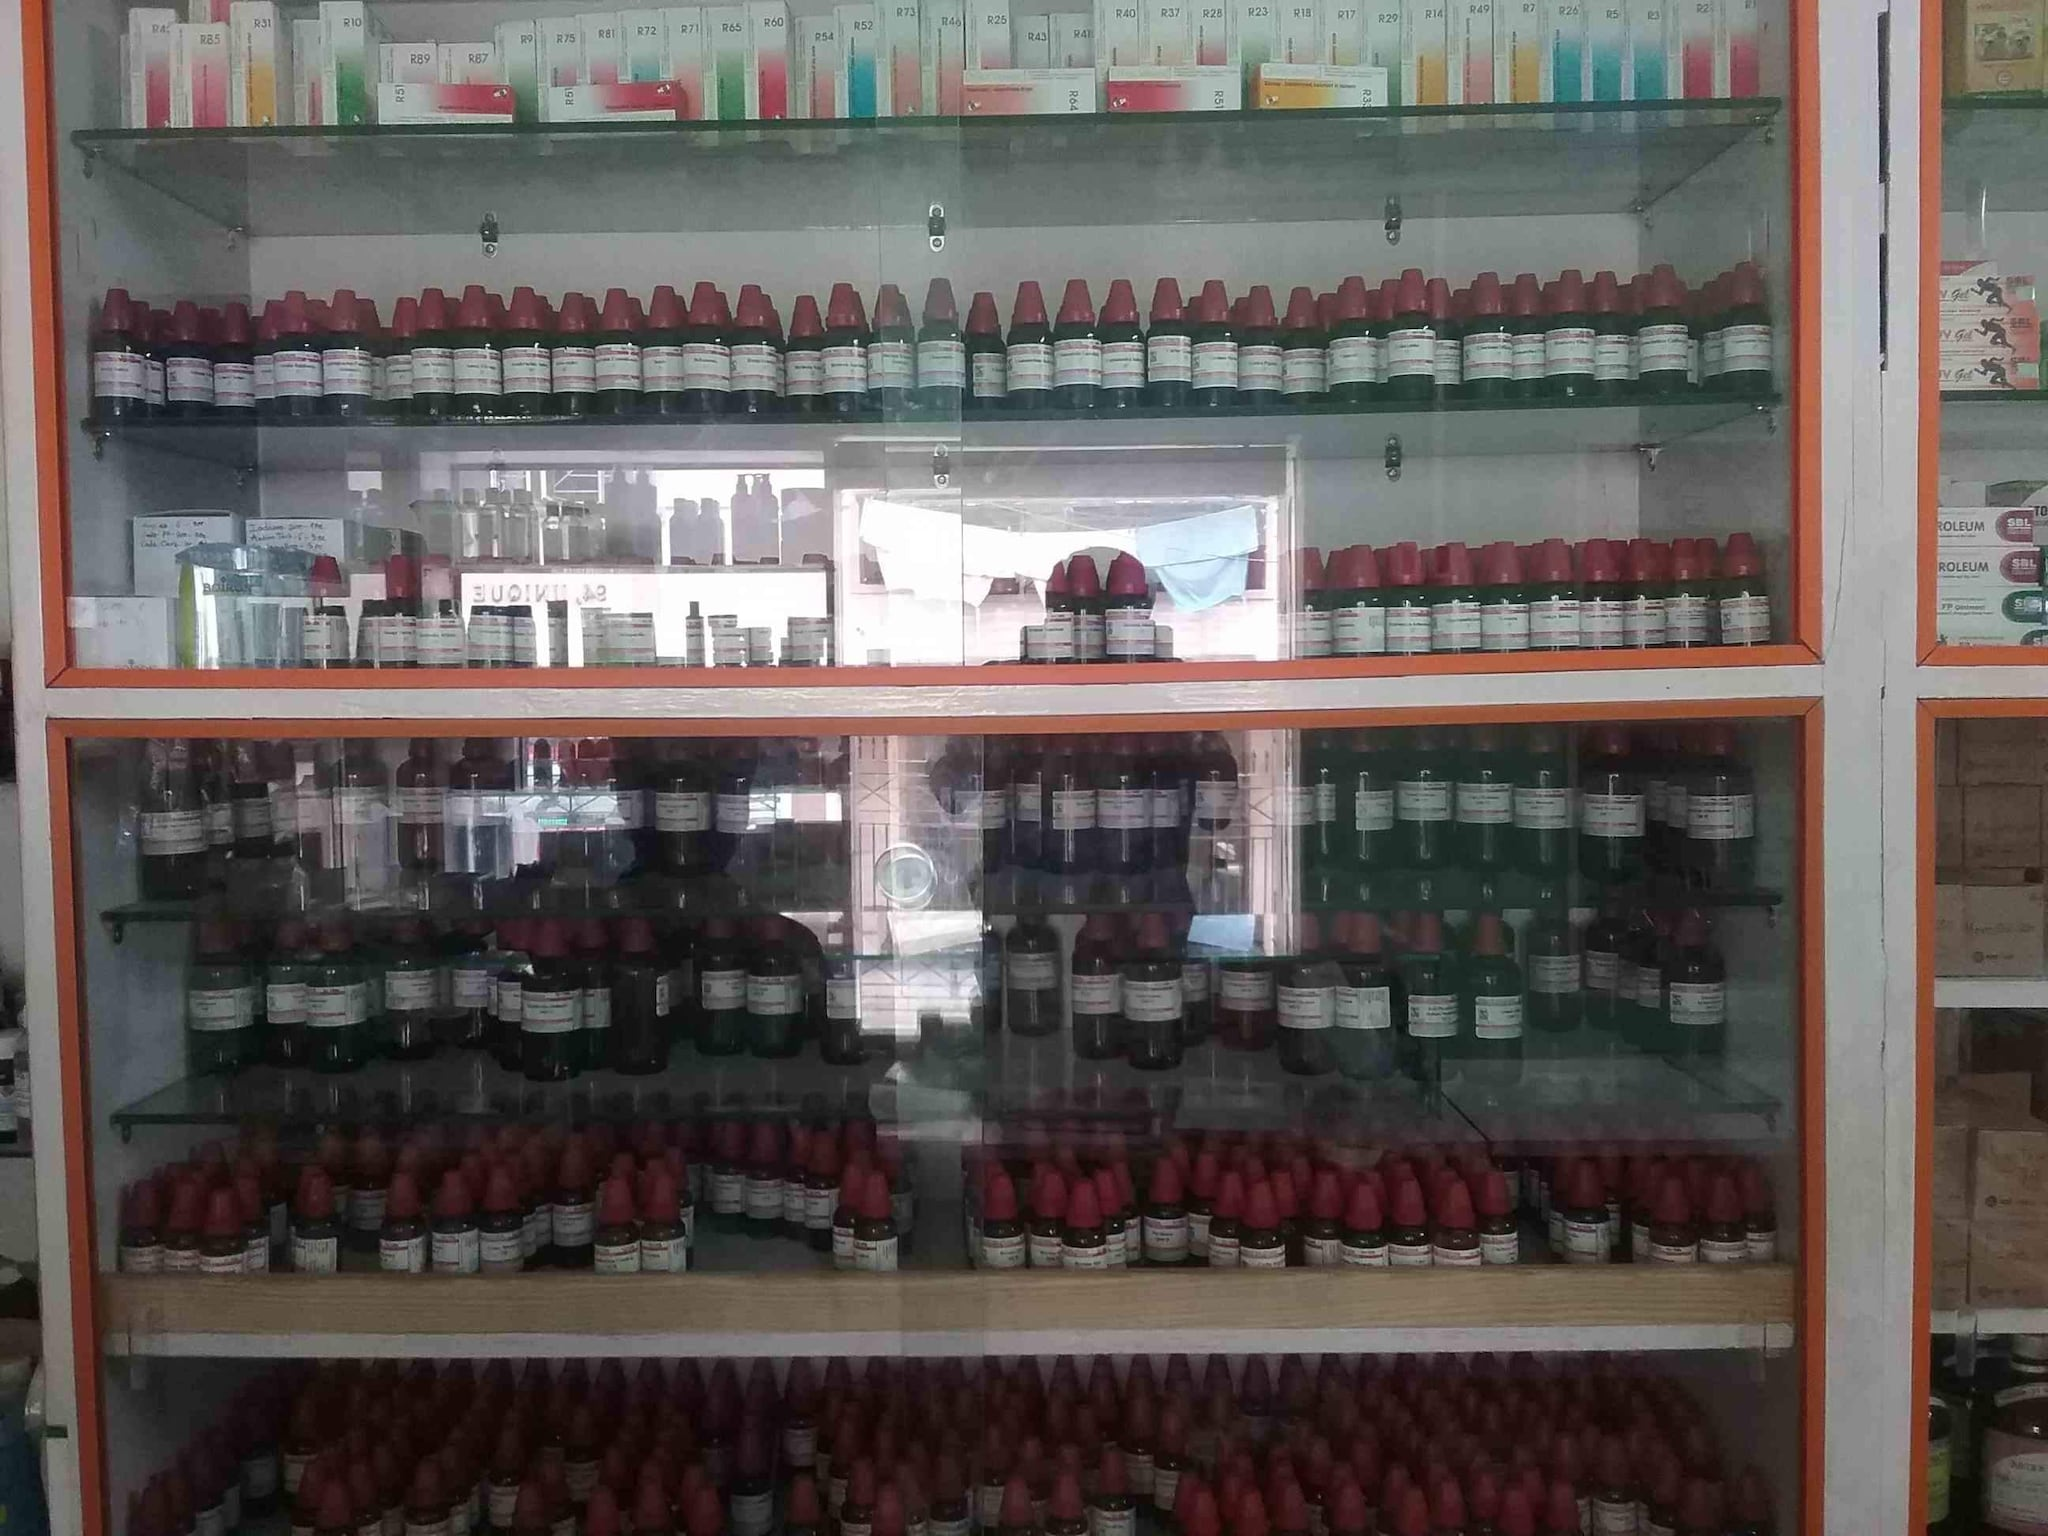 Top Dr Reckeweg Homeopathic Medicine Wholesalers in Behala - Best Dr